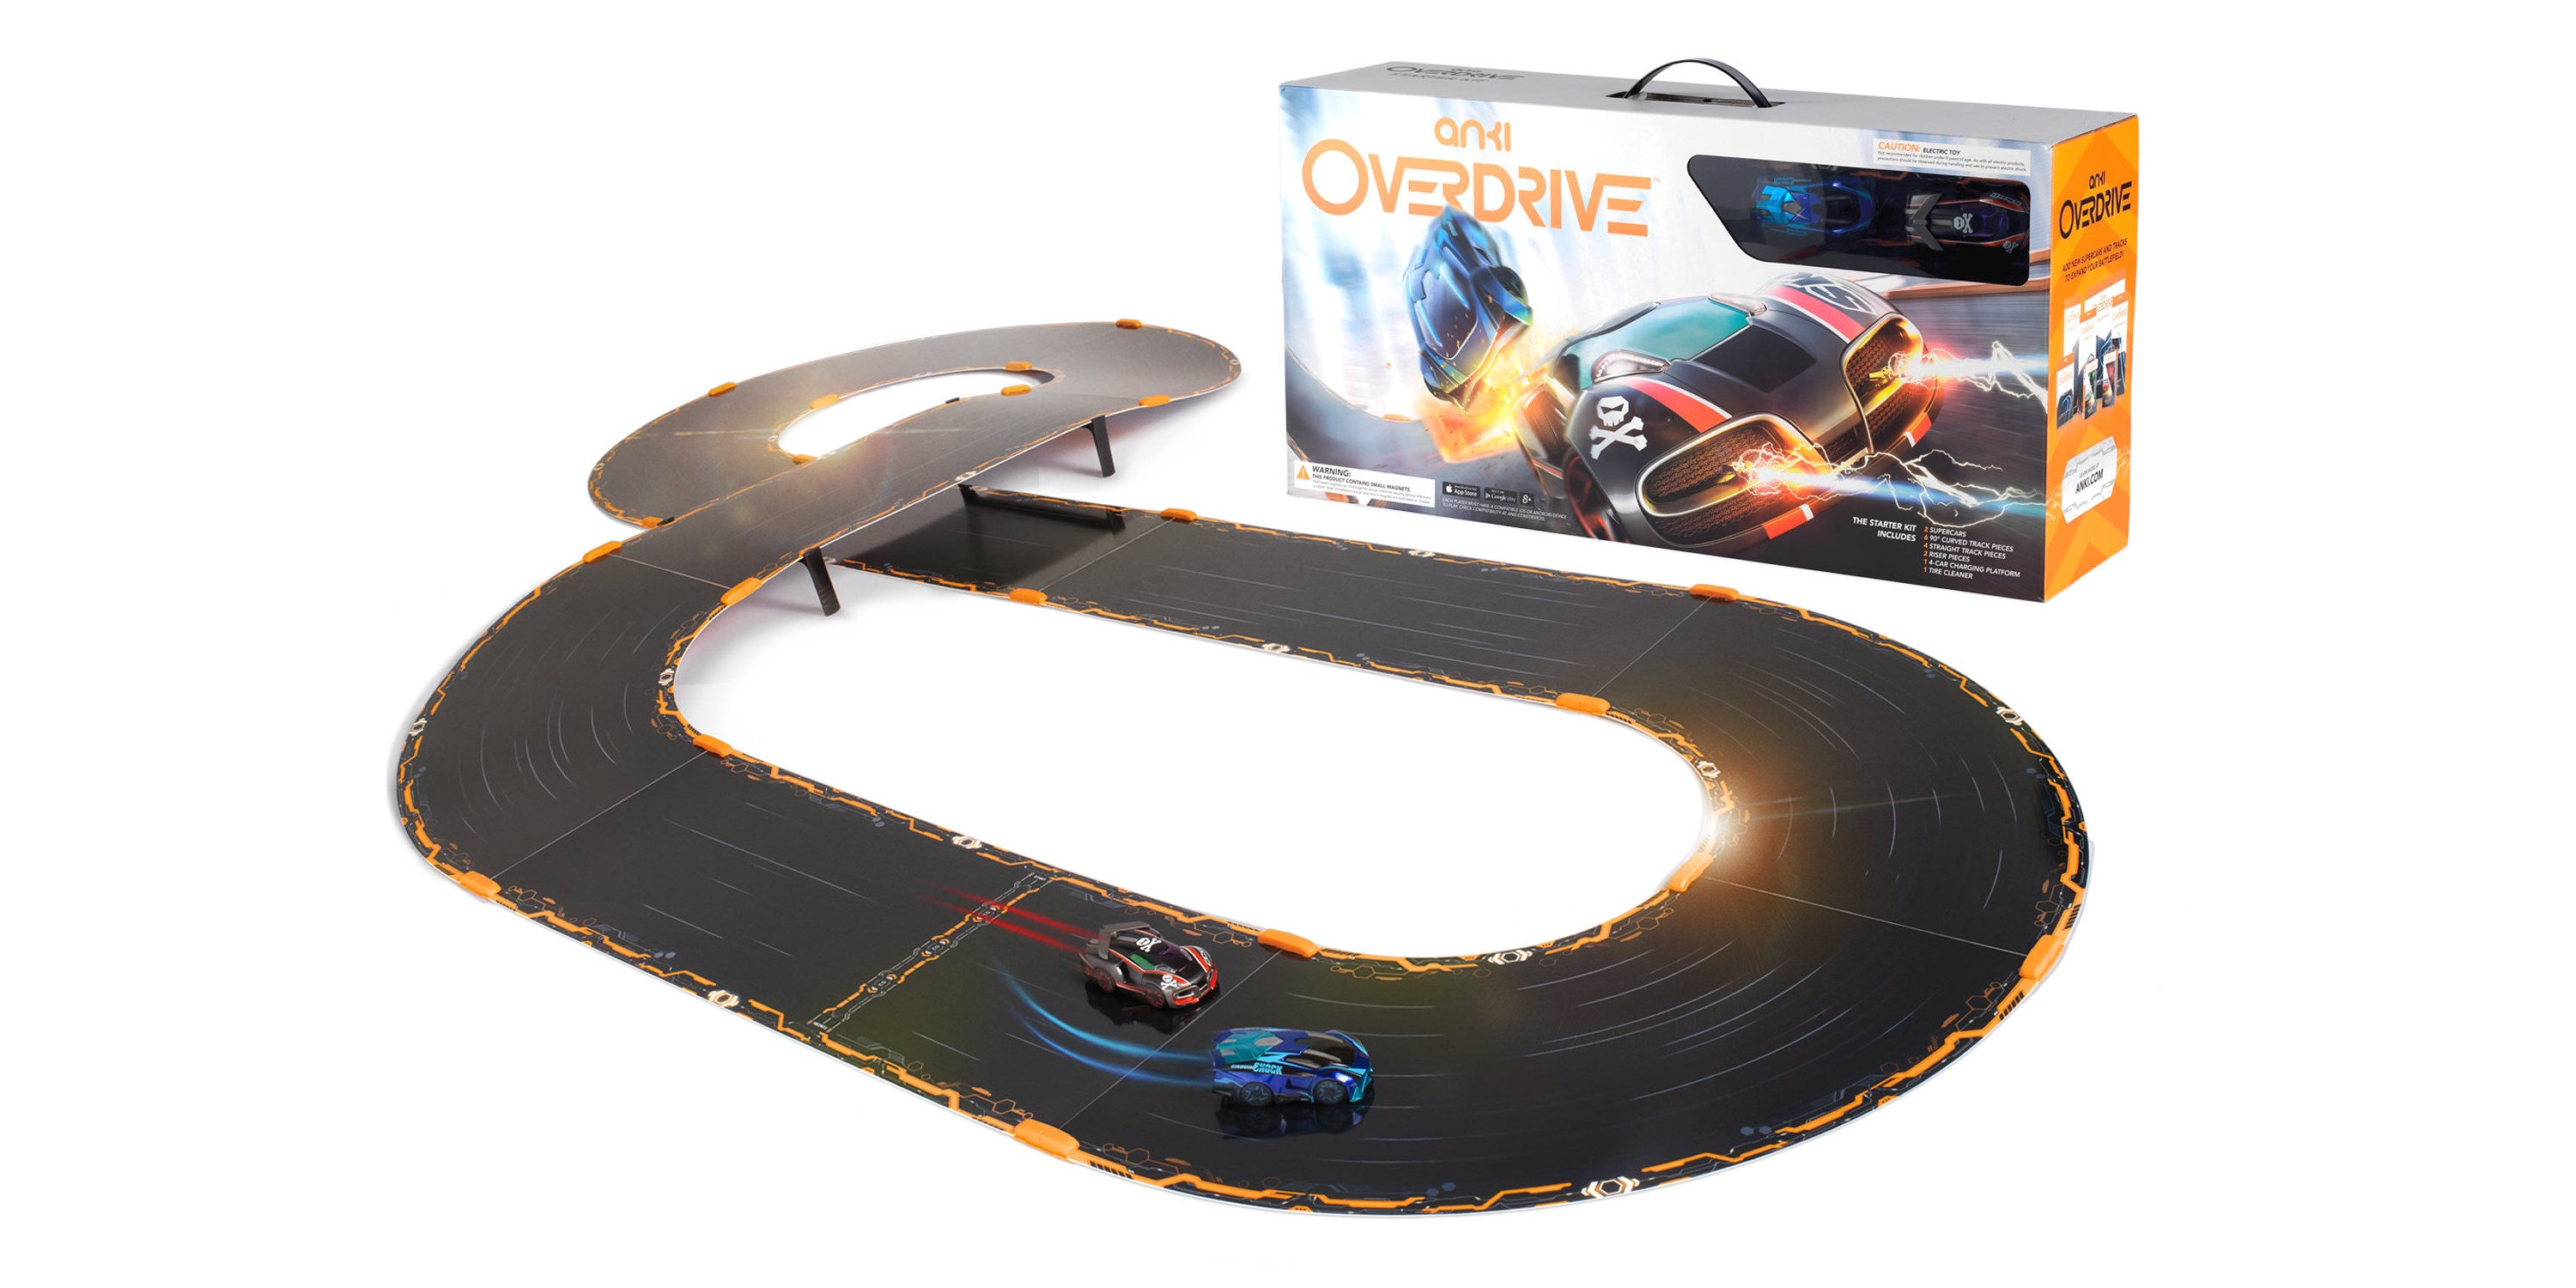 anki 39 s phone controlled slot car racer goes into overdrive. Black Bedroom Furniture Sets. Home Design Ideas